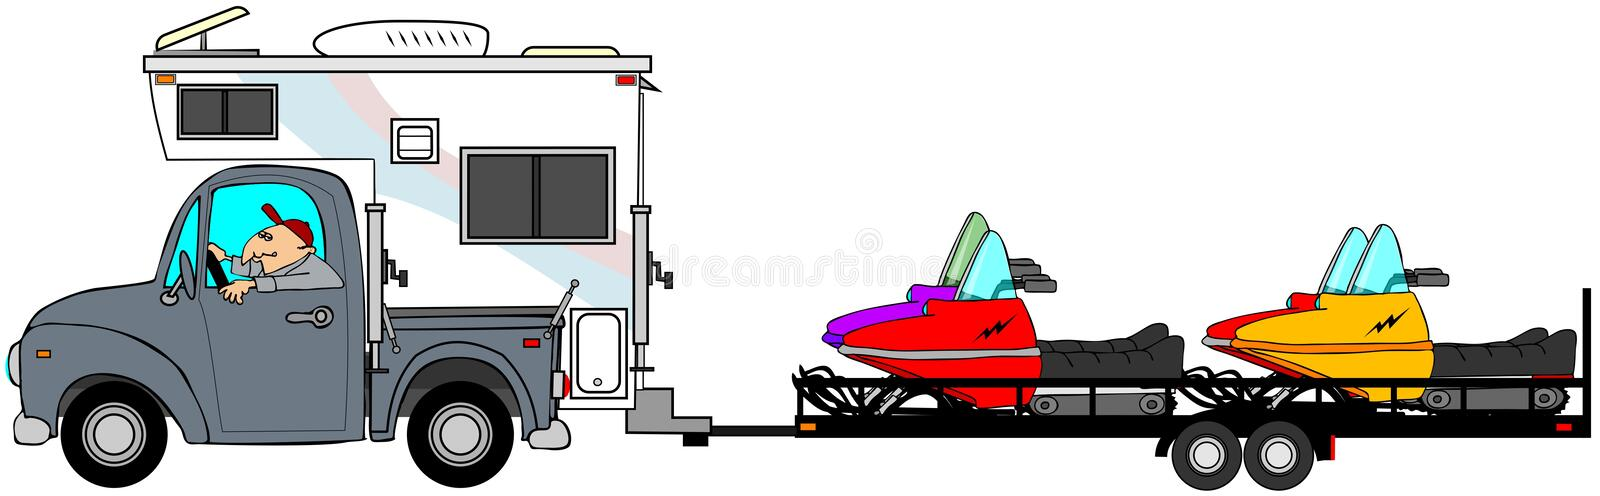 Truck and camper pulling snowmobiles stock illustration